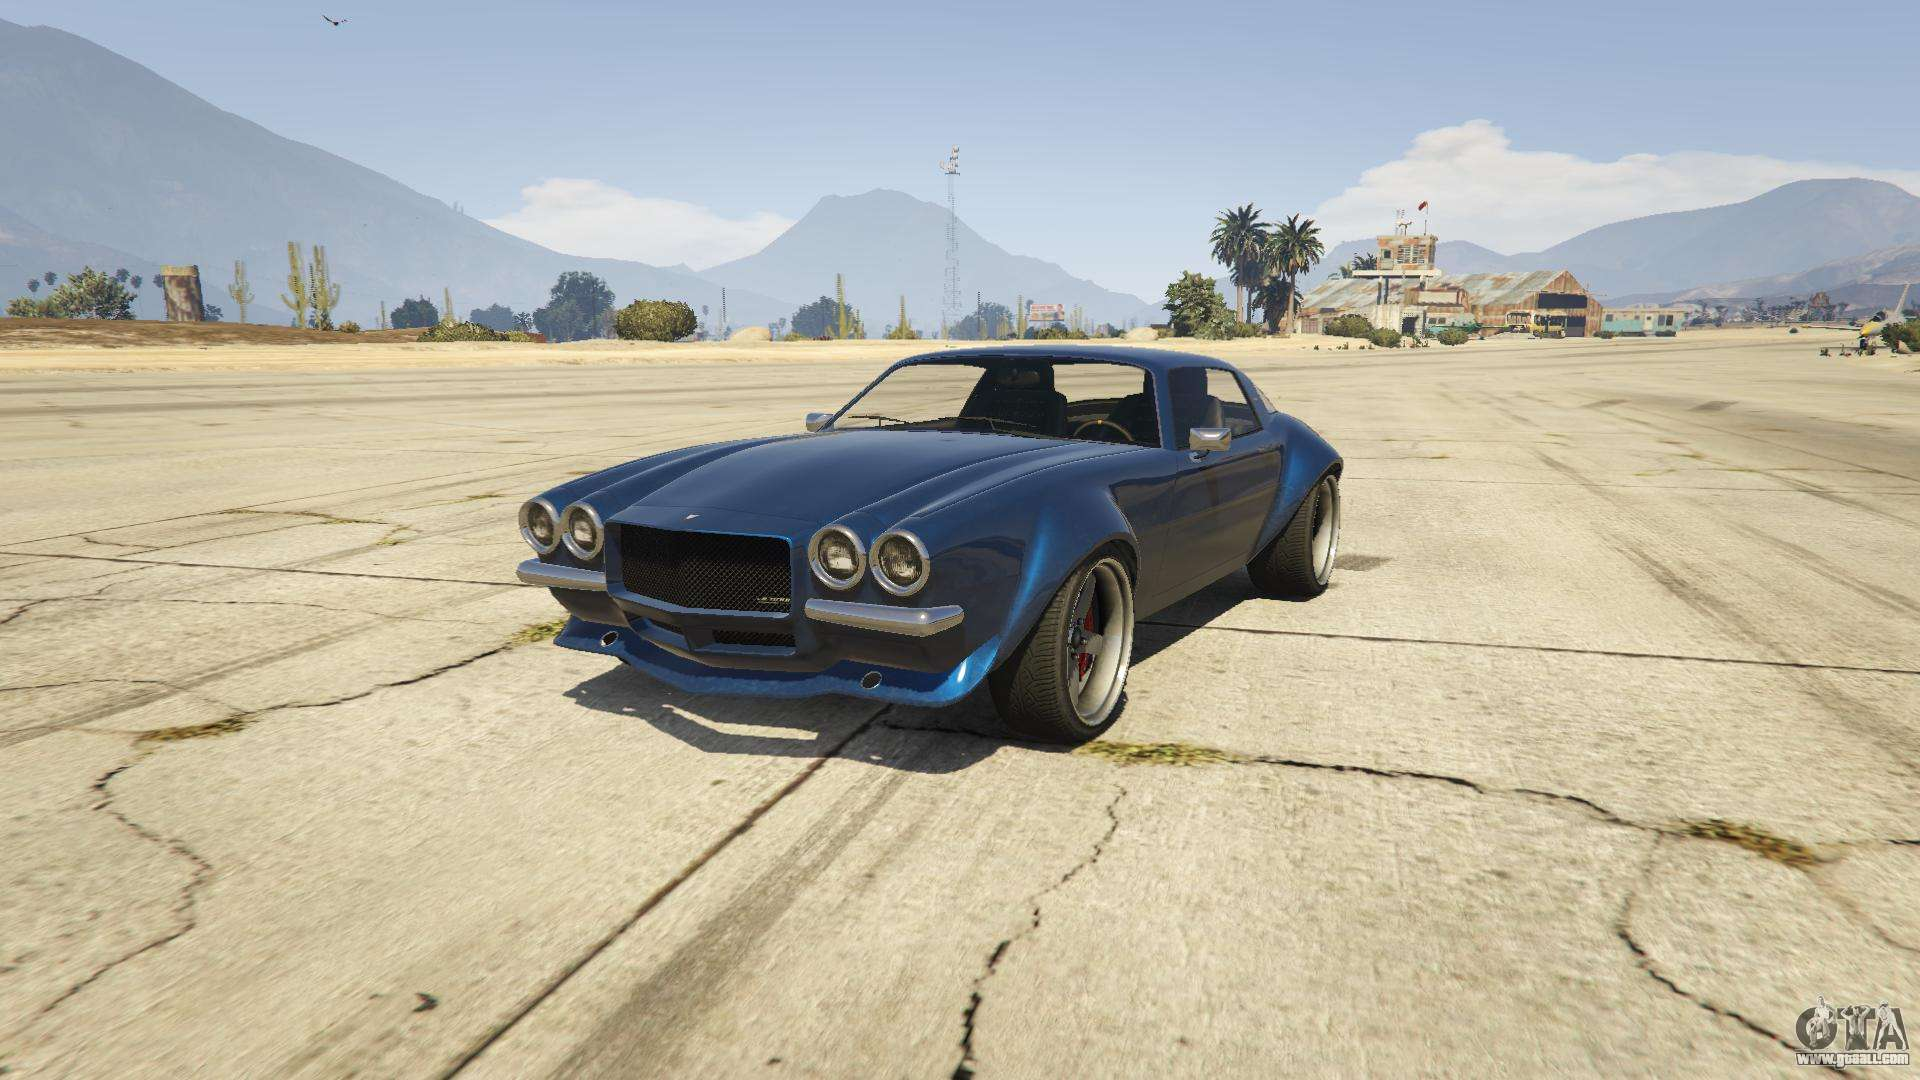 Imponte Nightshade From Gta Screenshots Features And Description